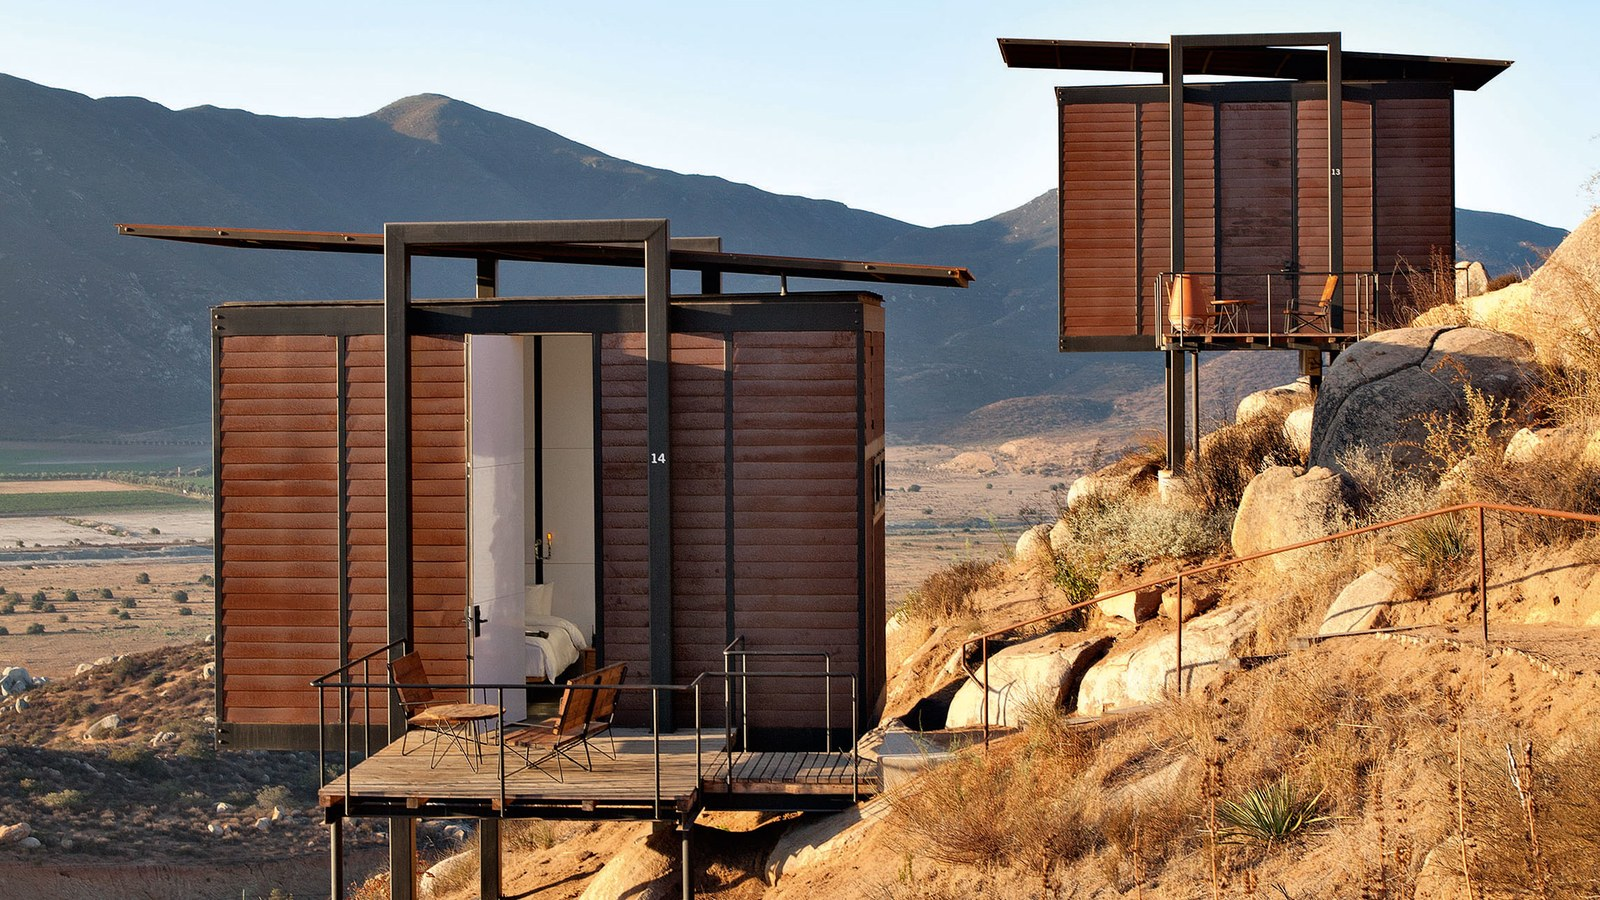 17 Tiny Buildings with Huge Ambition